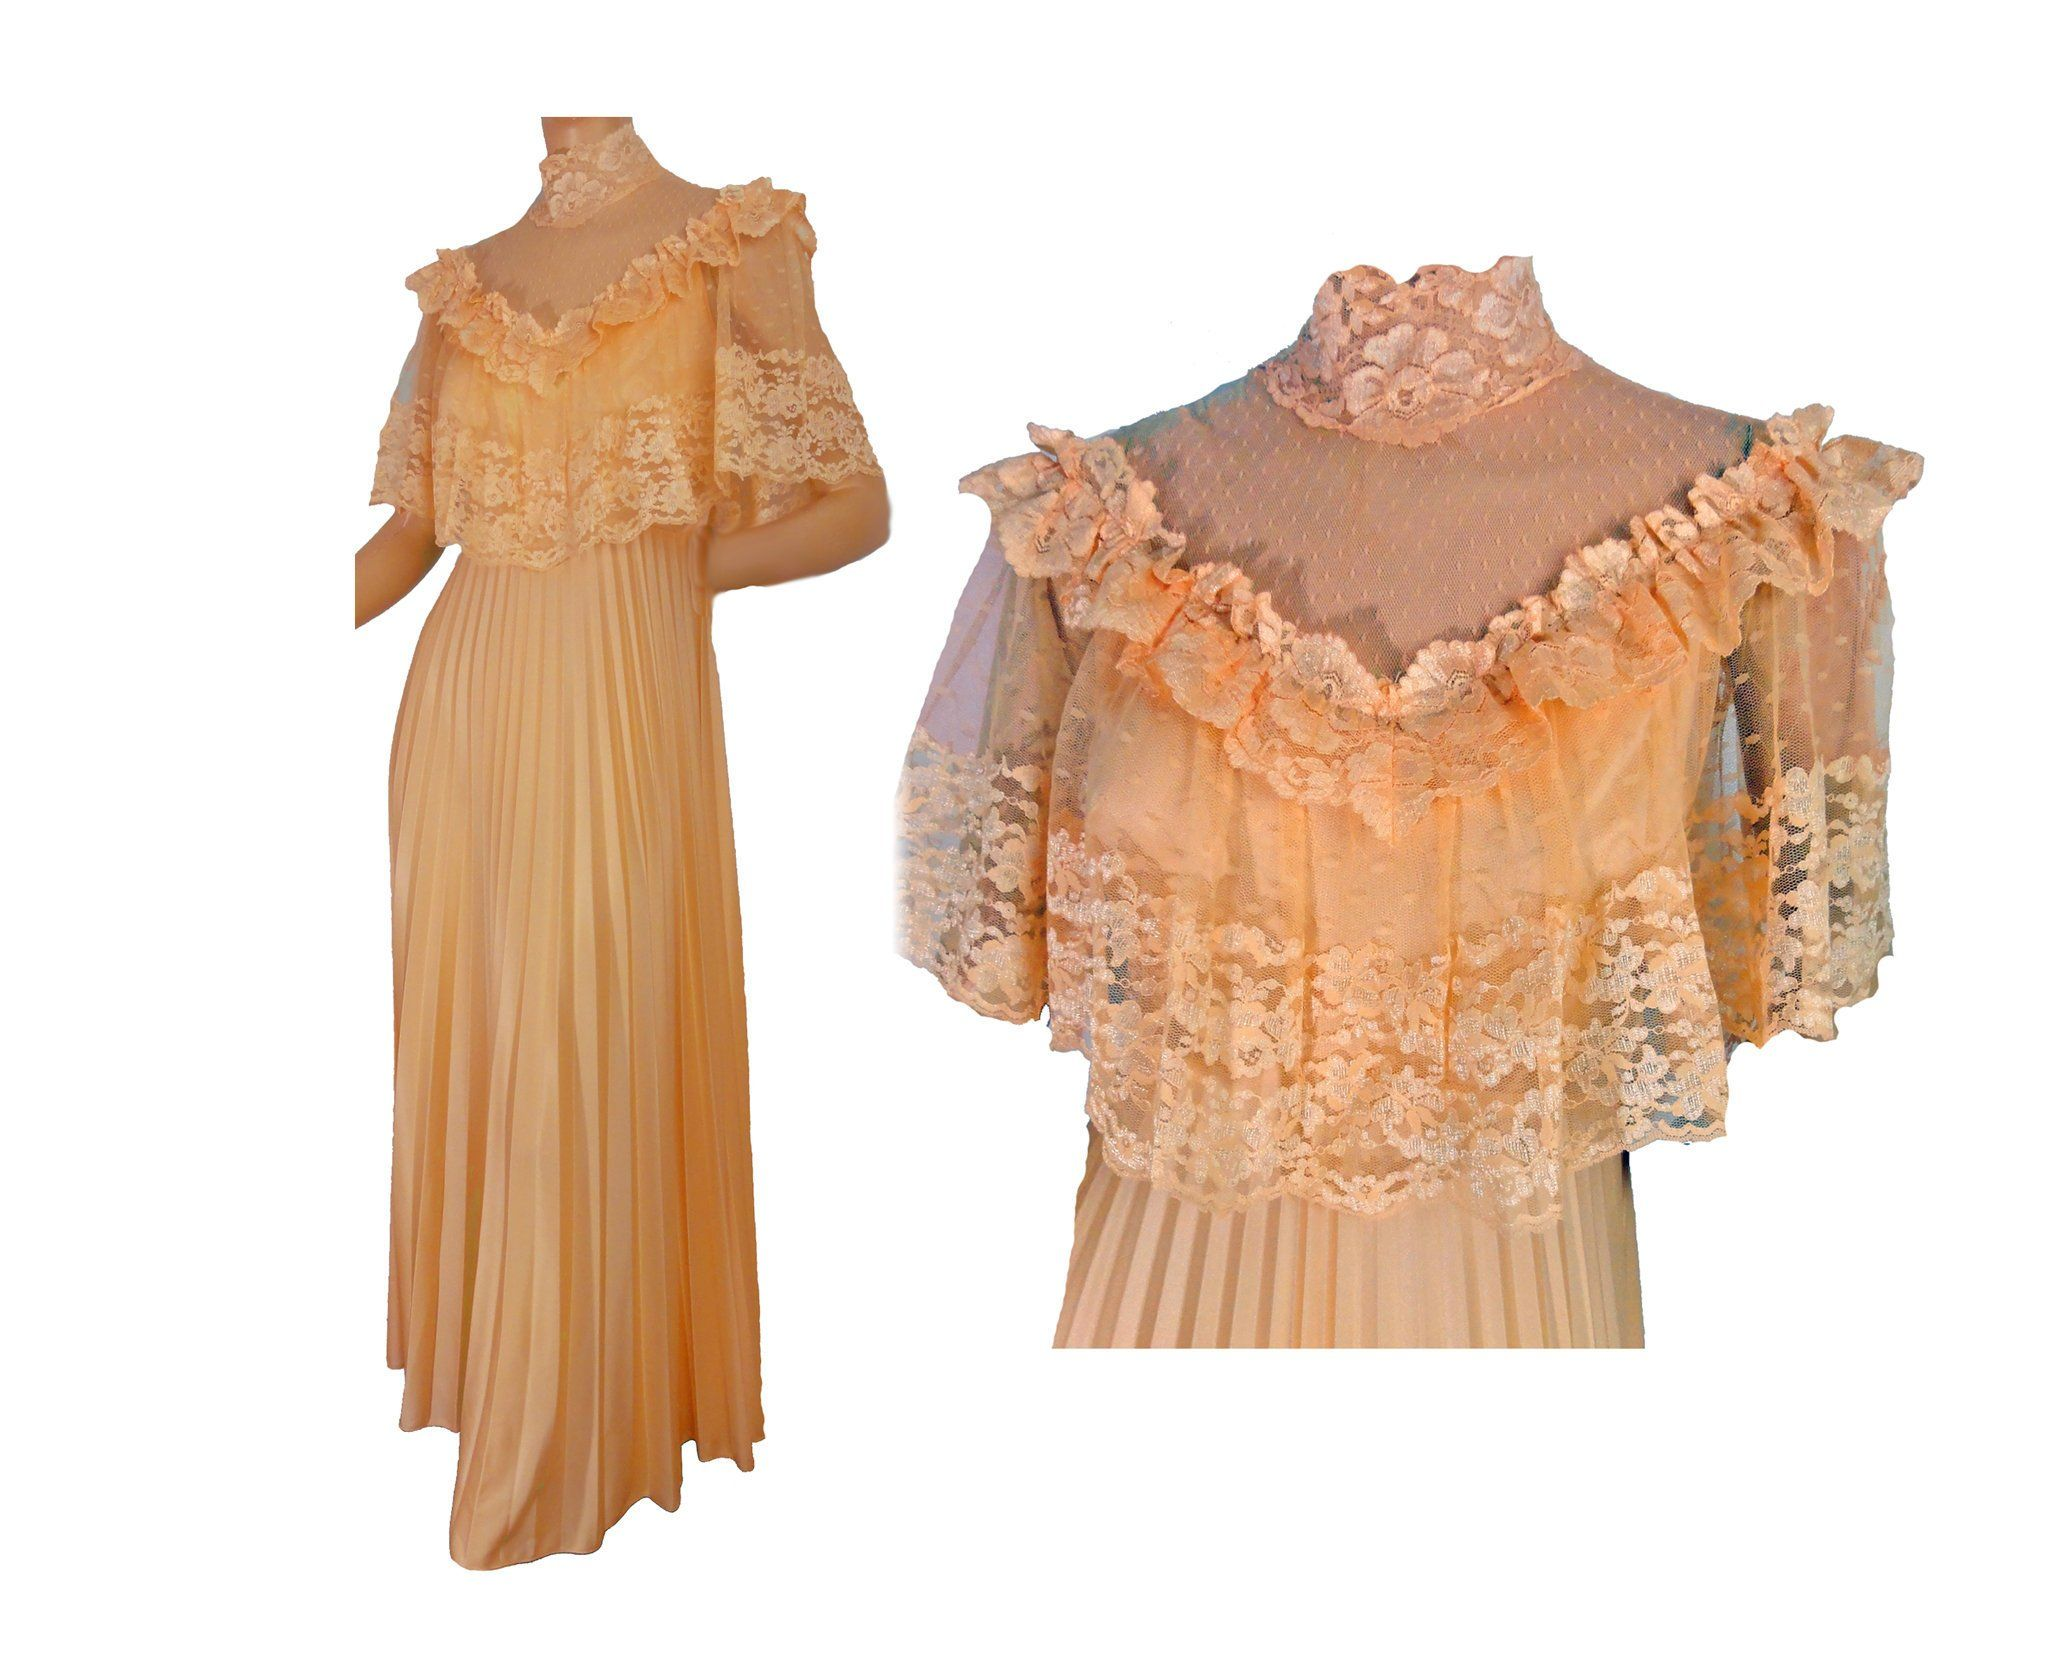 Vintage 70s Prom Dress Peach Orange Lacy Formal Evening Gown Pleated Skirt Victorian Revival 70s Prom Dress 70s Prom Evening Gowns Formal [ 1665 x 2055 Pixel ]